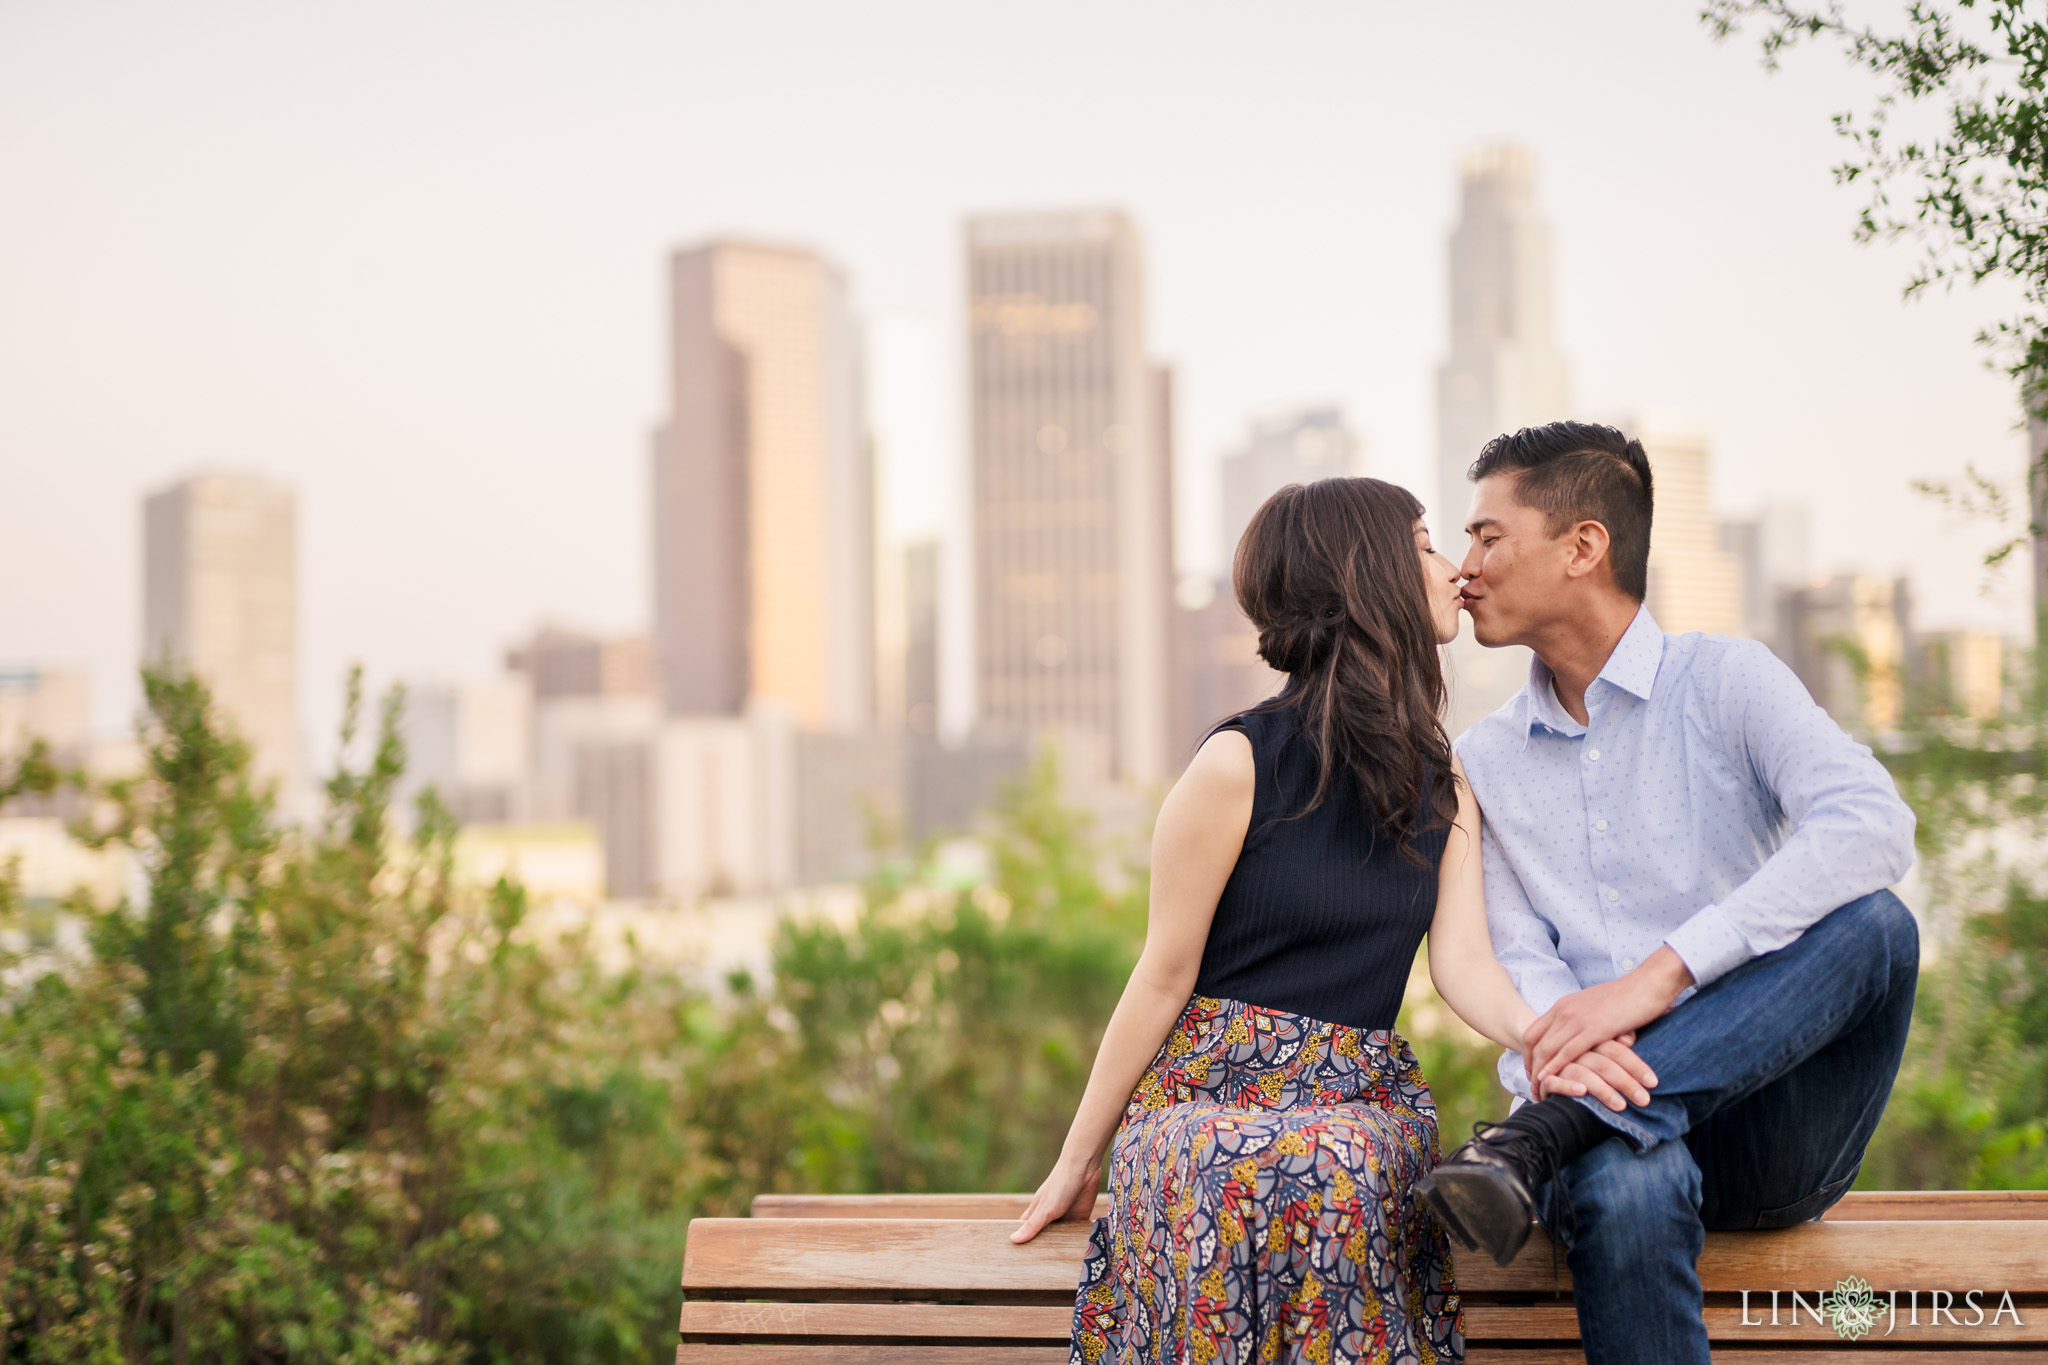 13 Vista Hermosa Natural Park Los Angeles Engagement Photography